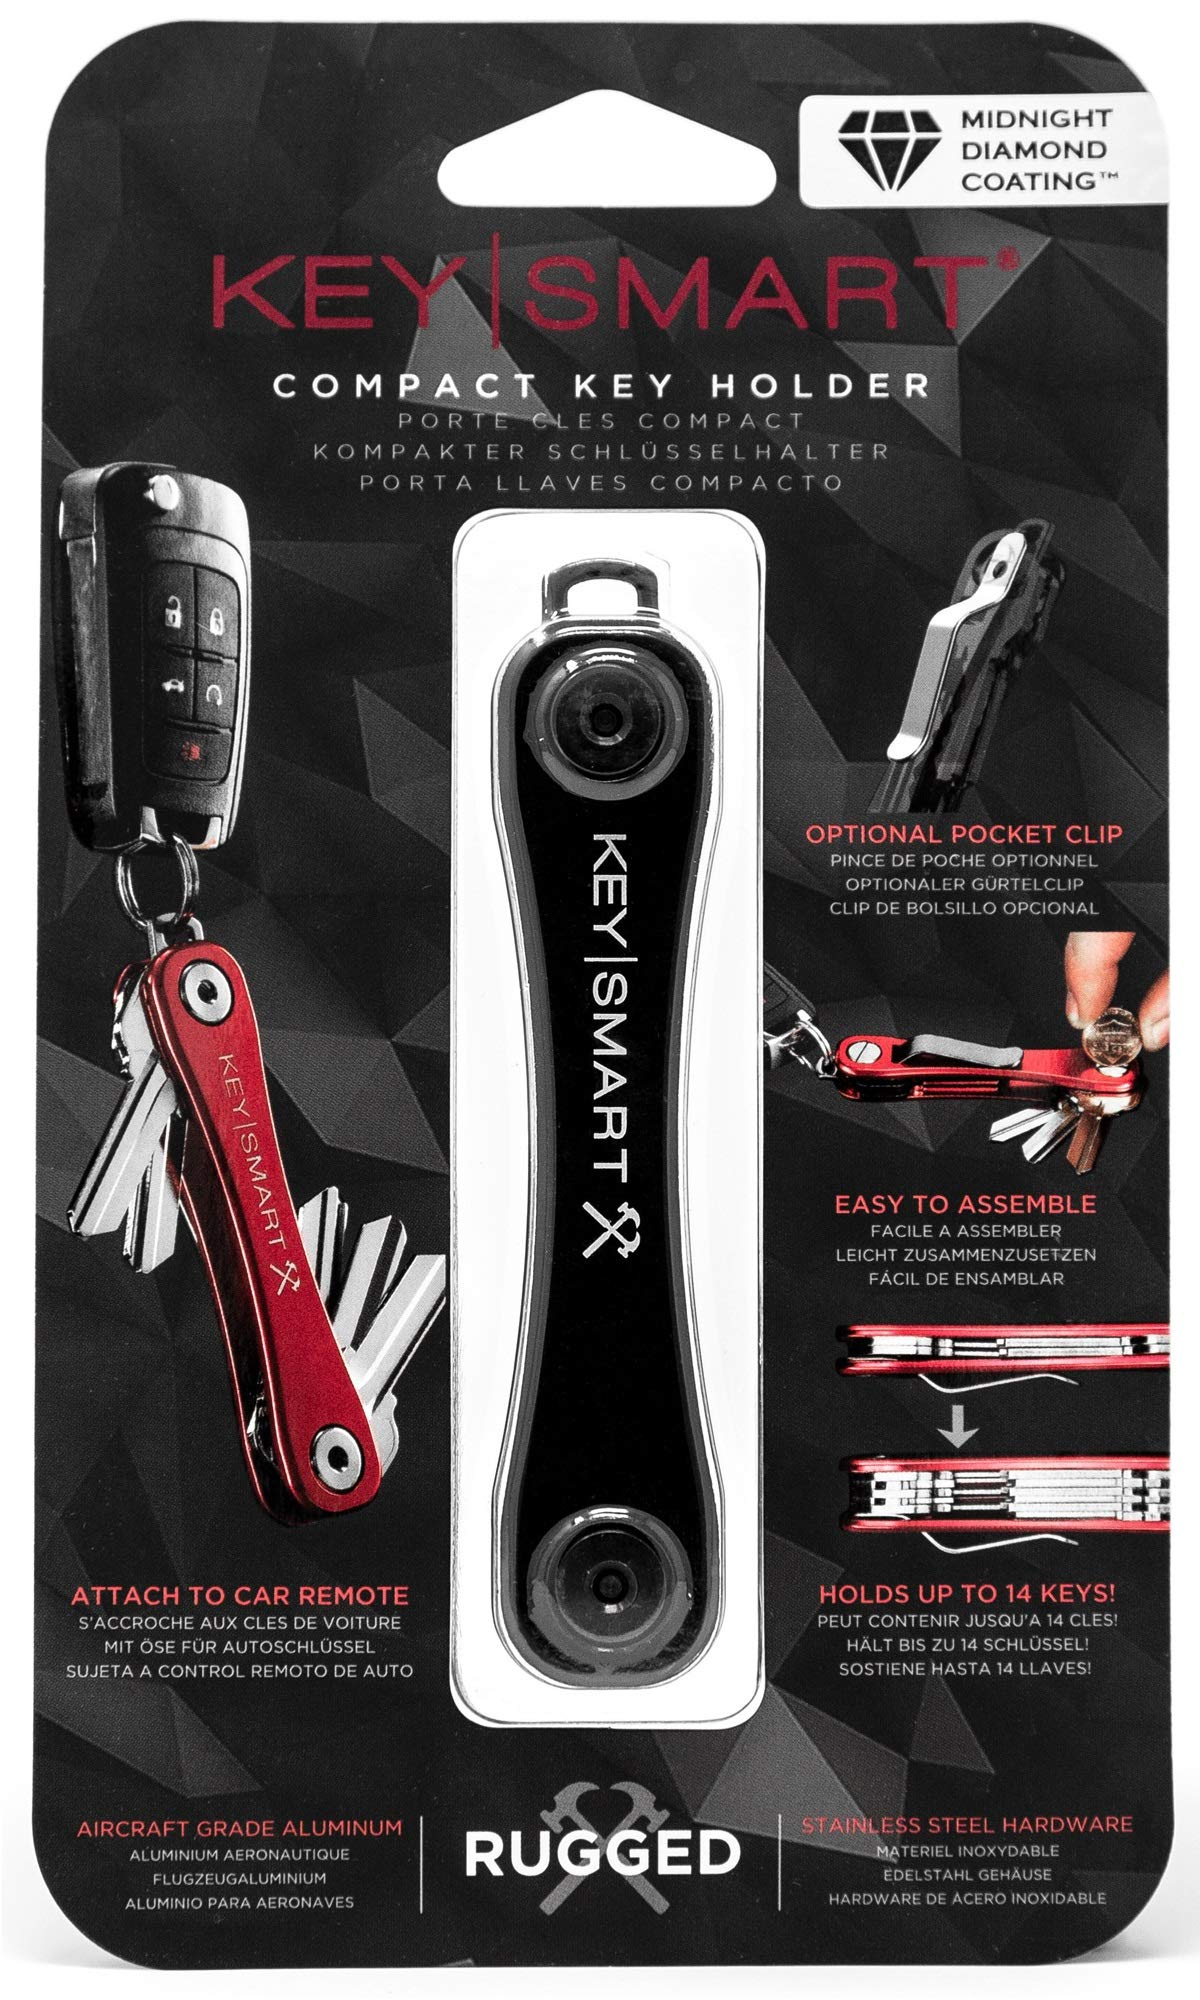 KeySmart Rugged - Multi-Tool Key Holder with Bottle Opener and Pocket Clip (up to 14 Keys, Midnight Diamond)